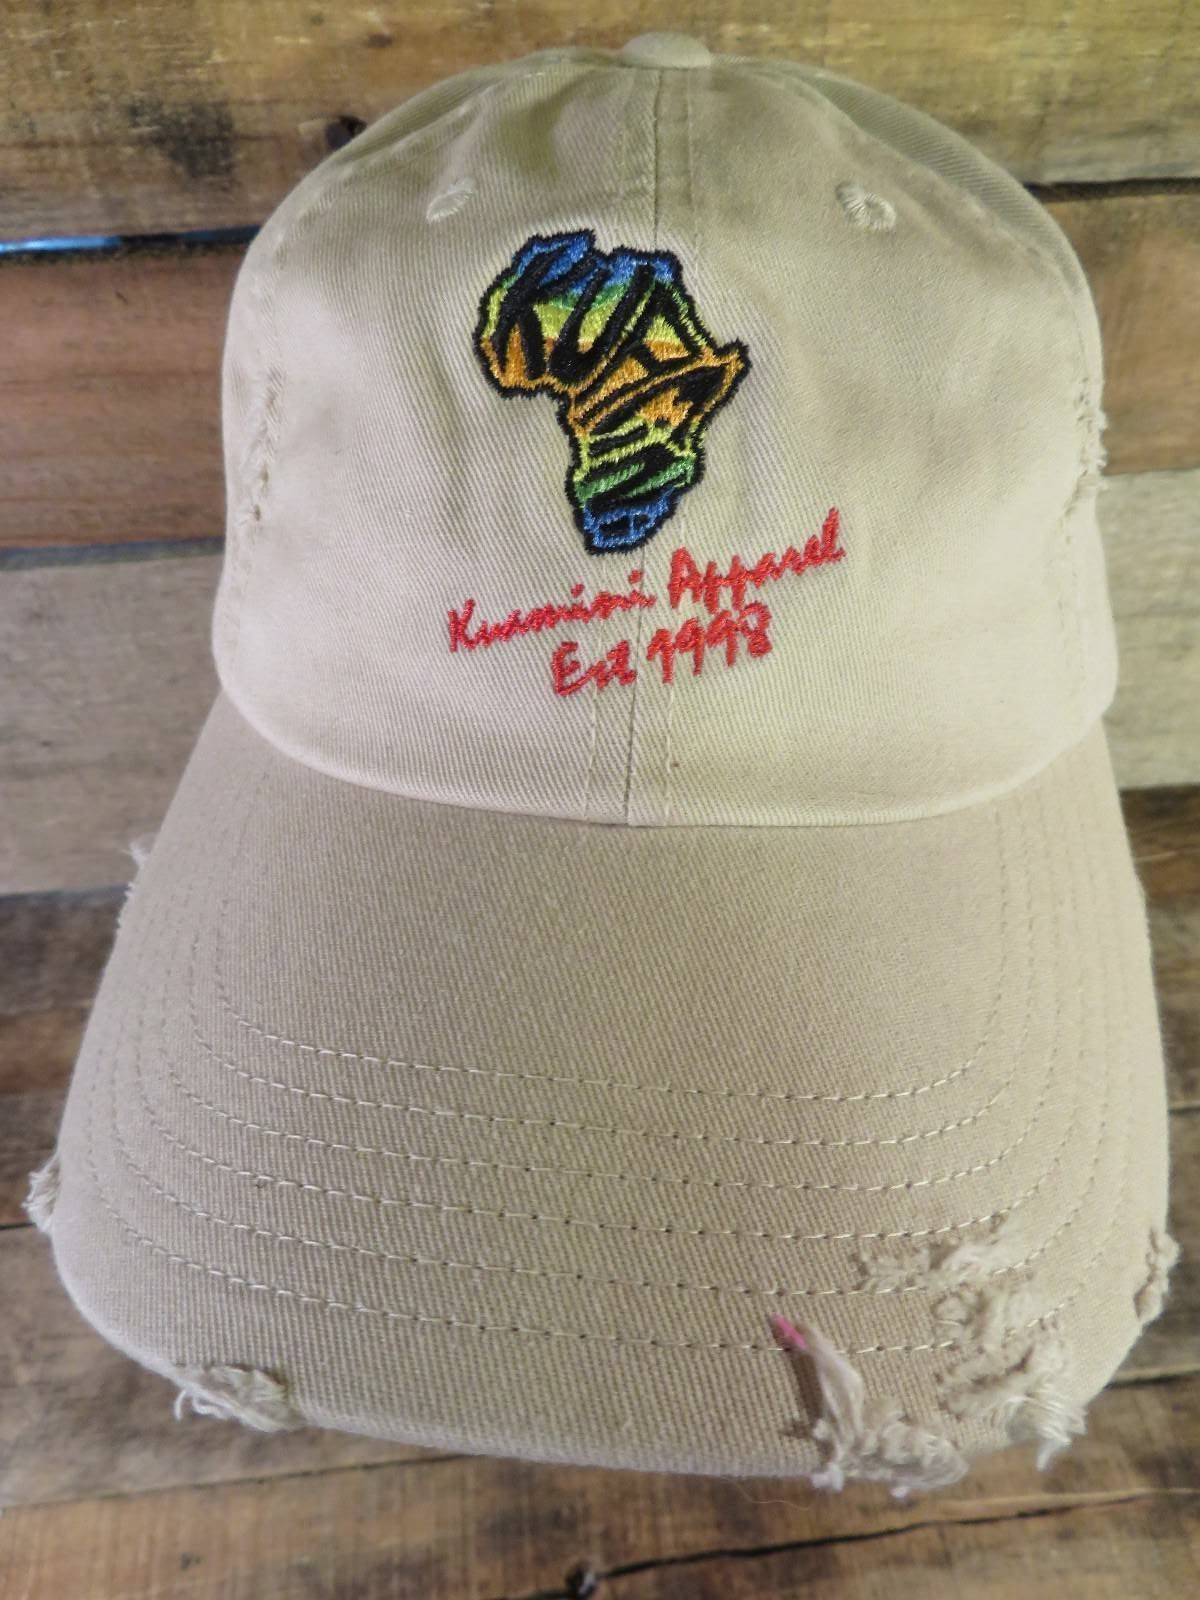 Primary image for KUAMINI Apparel Est 1998 Distressed Adjustable Adult Hat Cap